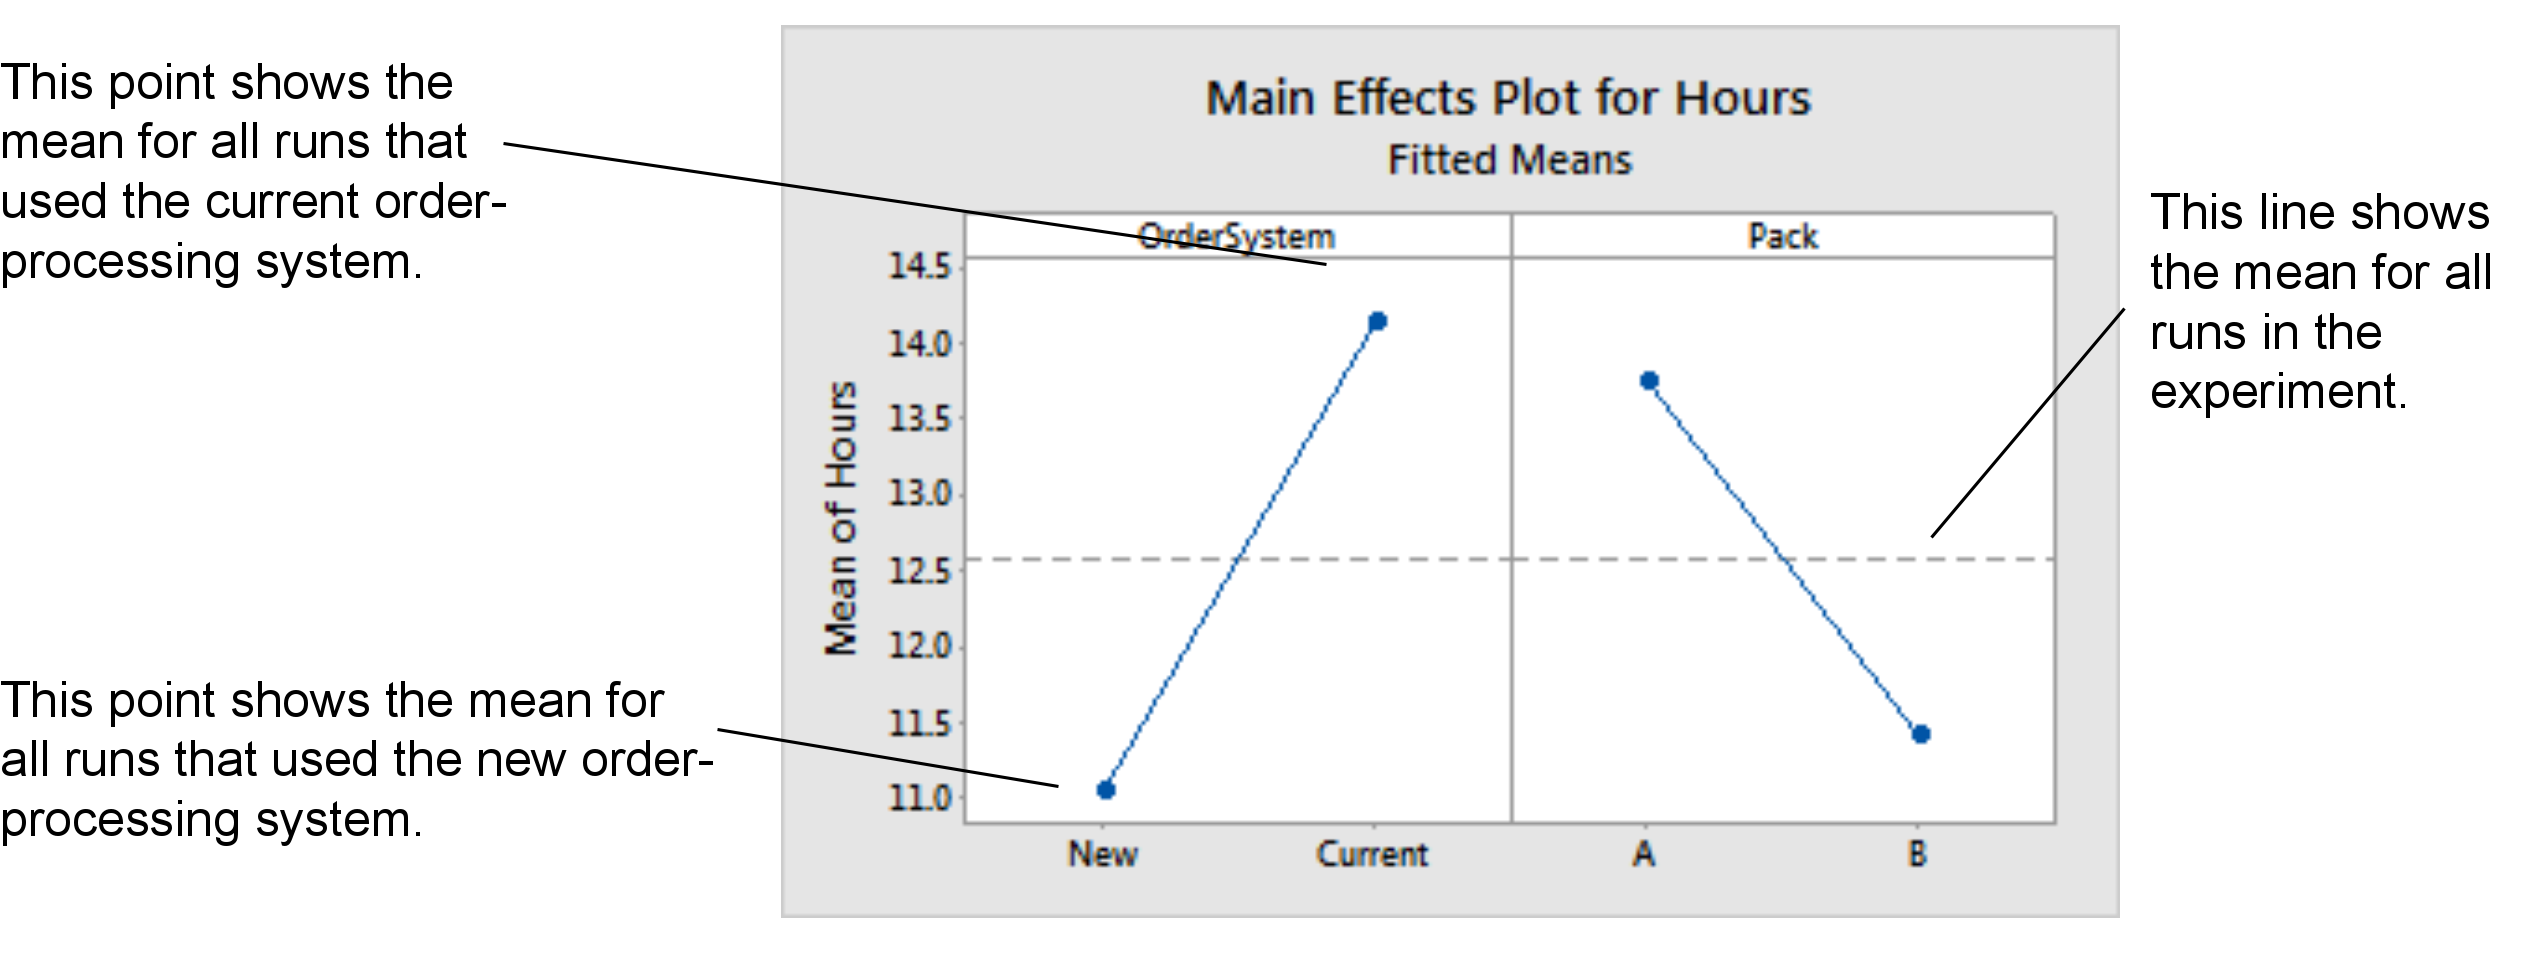 Designing an experiment minitab processing time for one level of a factor the horizontal center line shows the mean processing time for all runs the left panel of the plot indicates ccuart Image collections